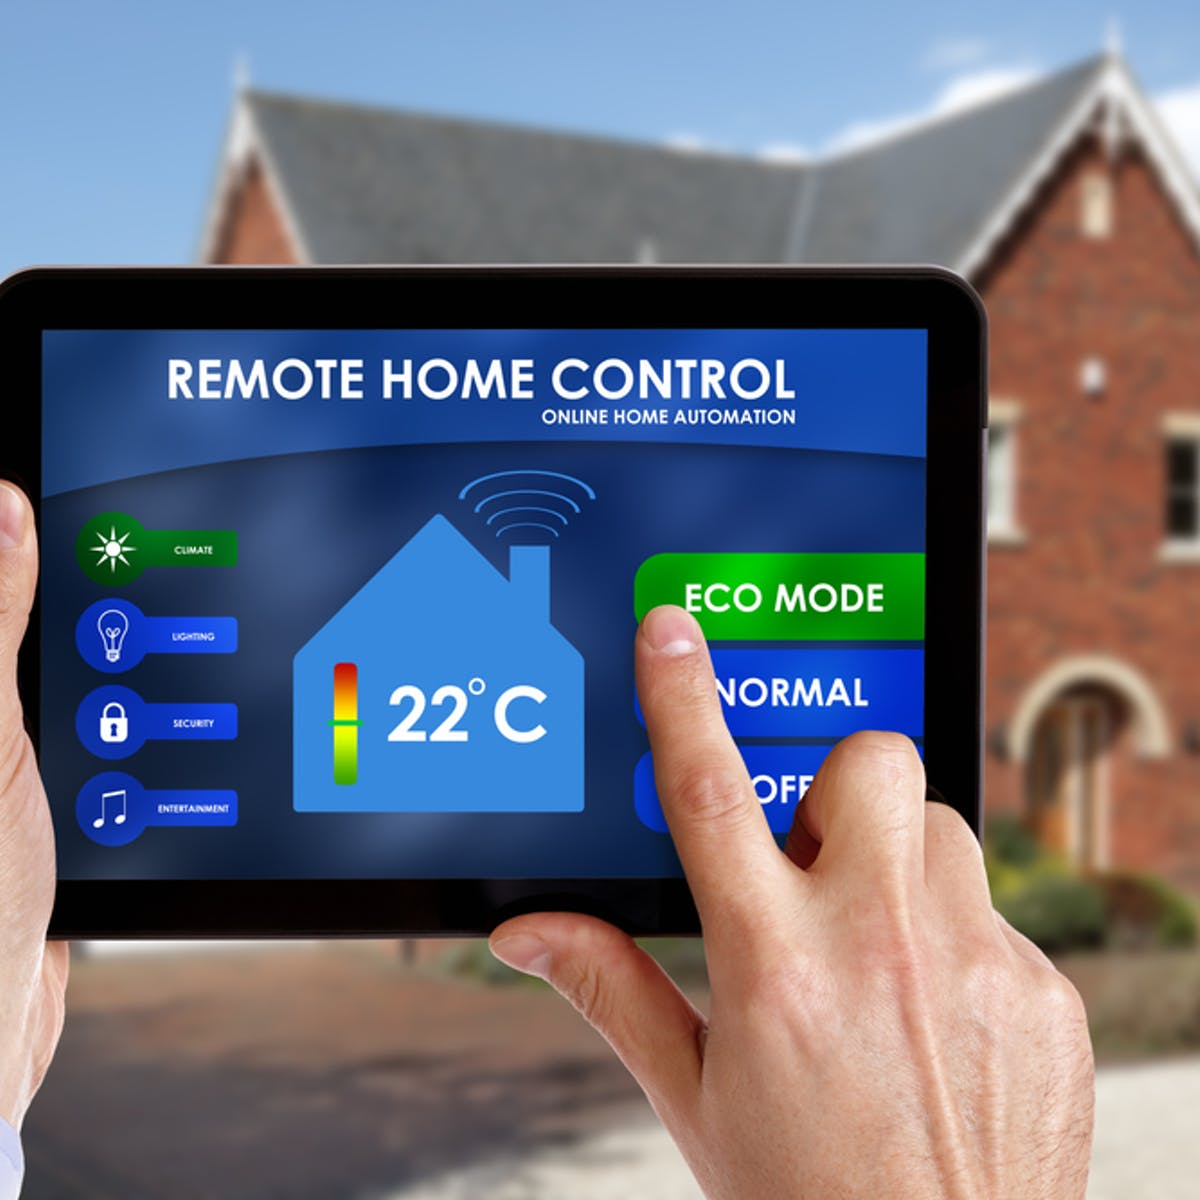 smart homes: consumers favor home security over efficiency